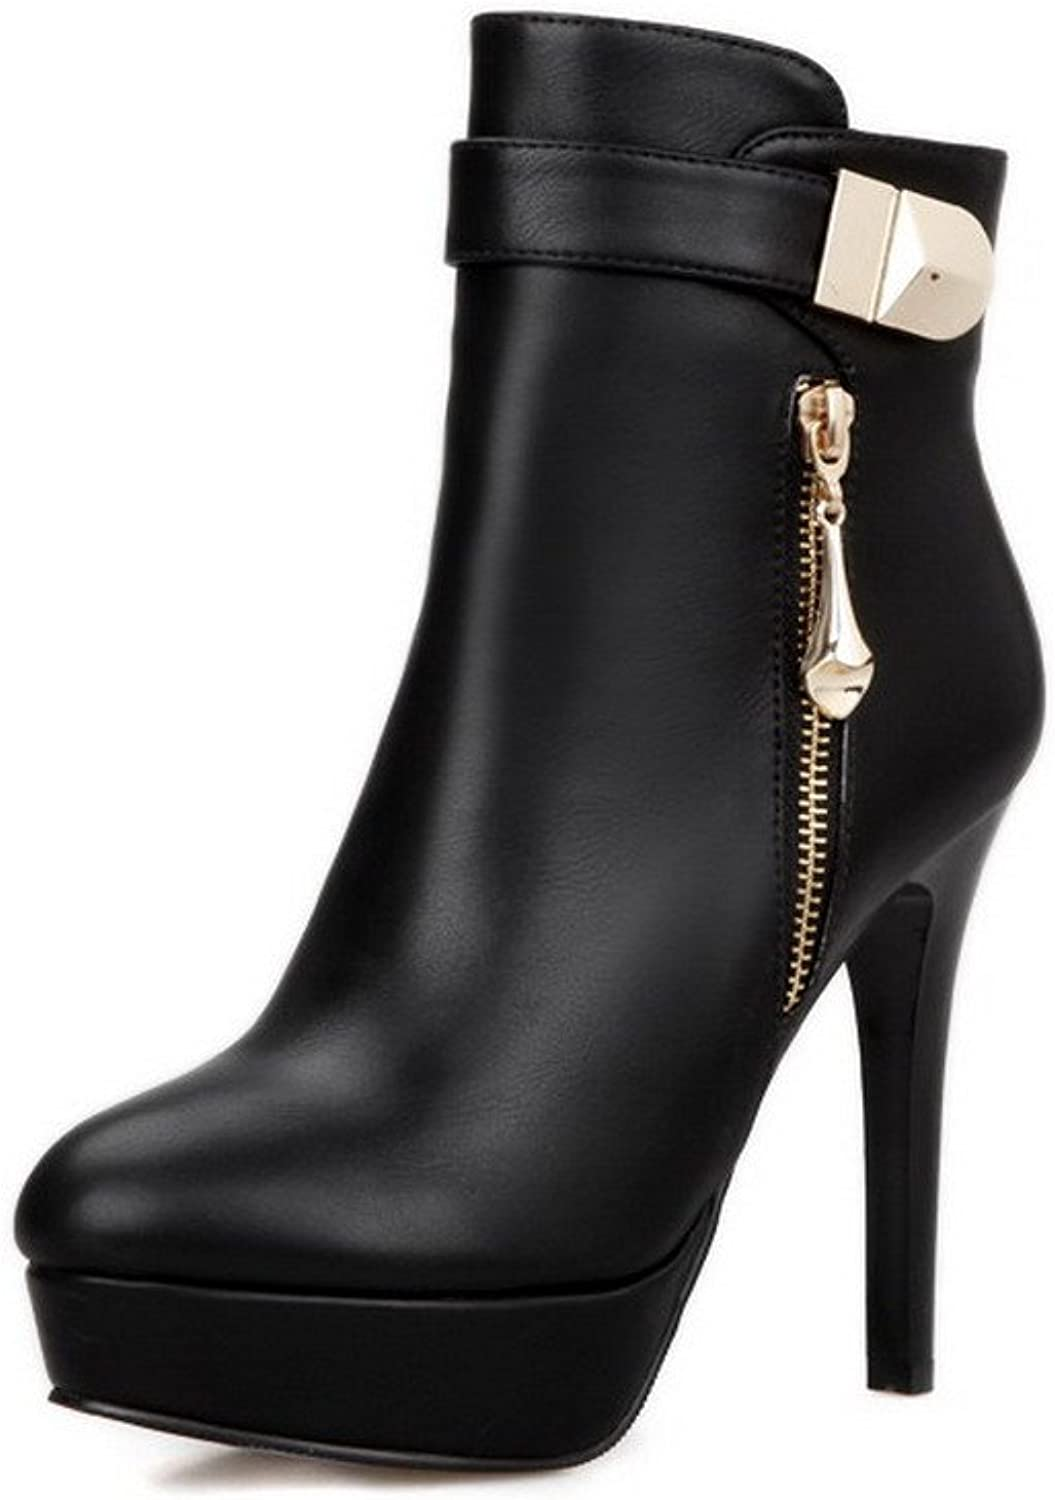 WeenFashion Women's Closed Round Toe Blend Materials High-heels Low-top Boots